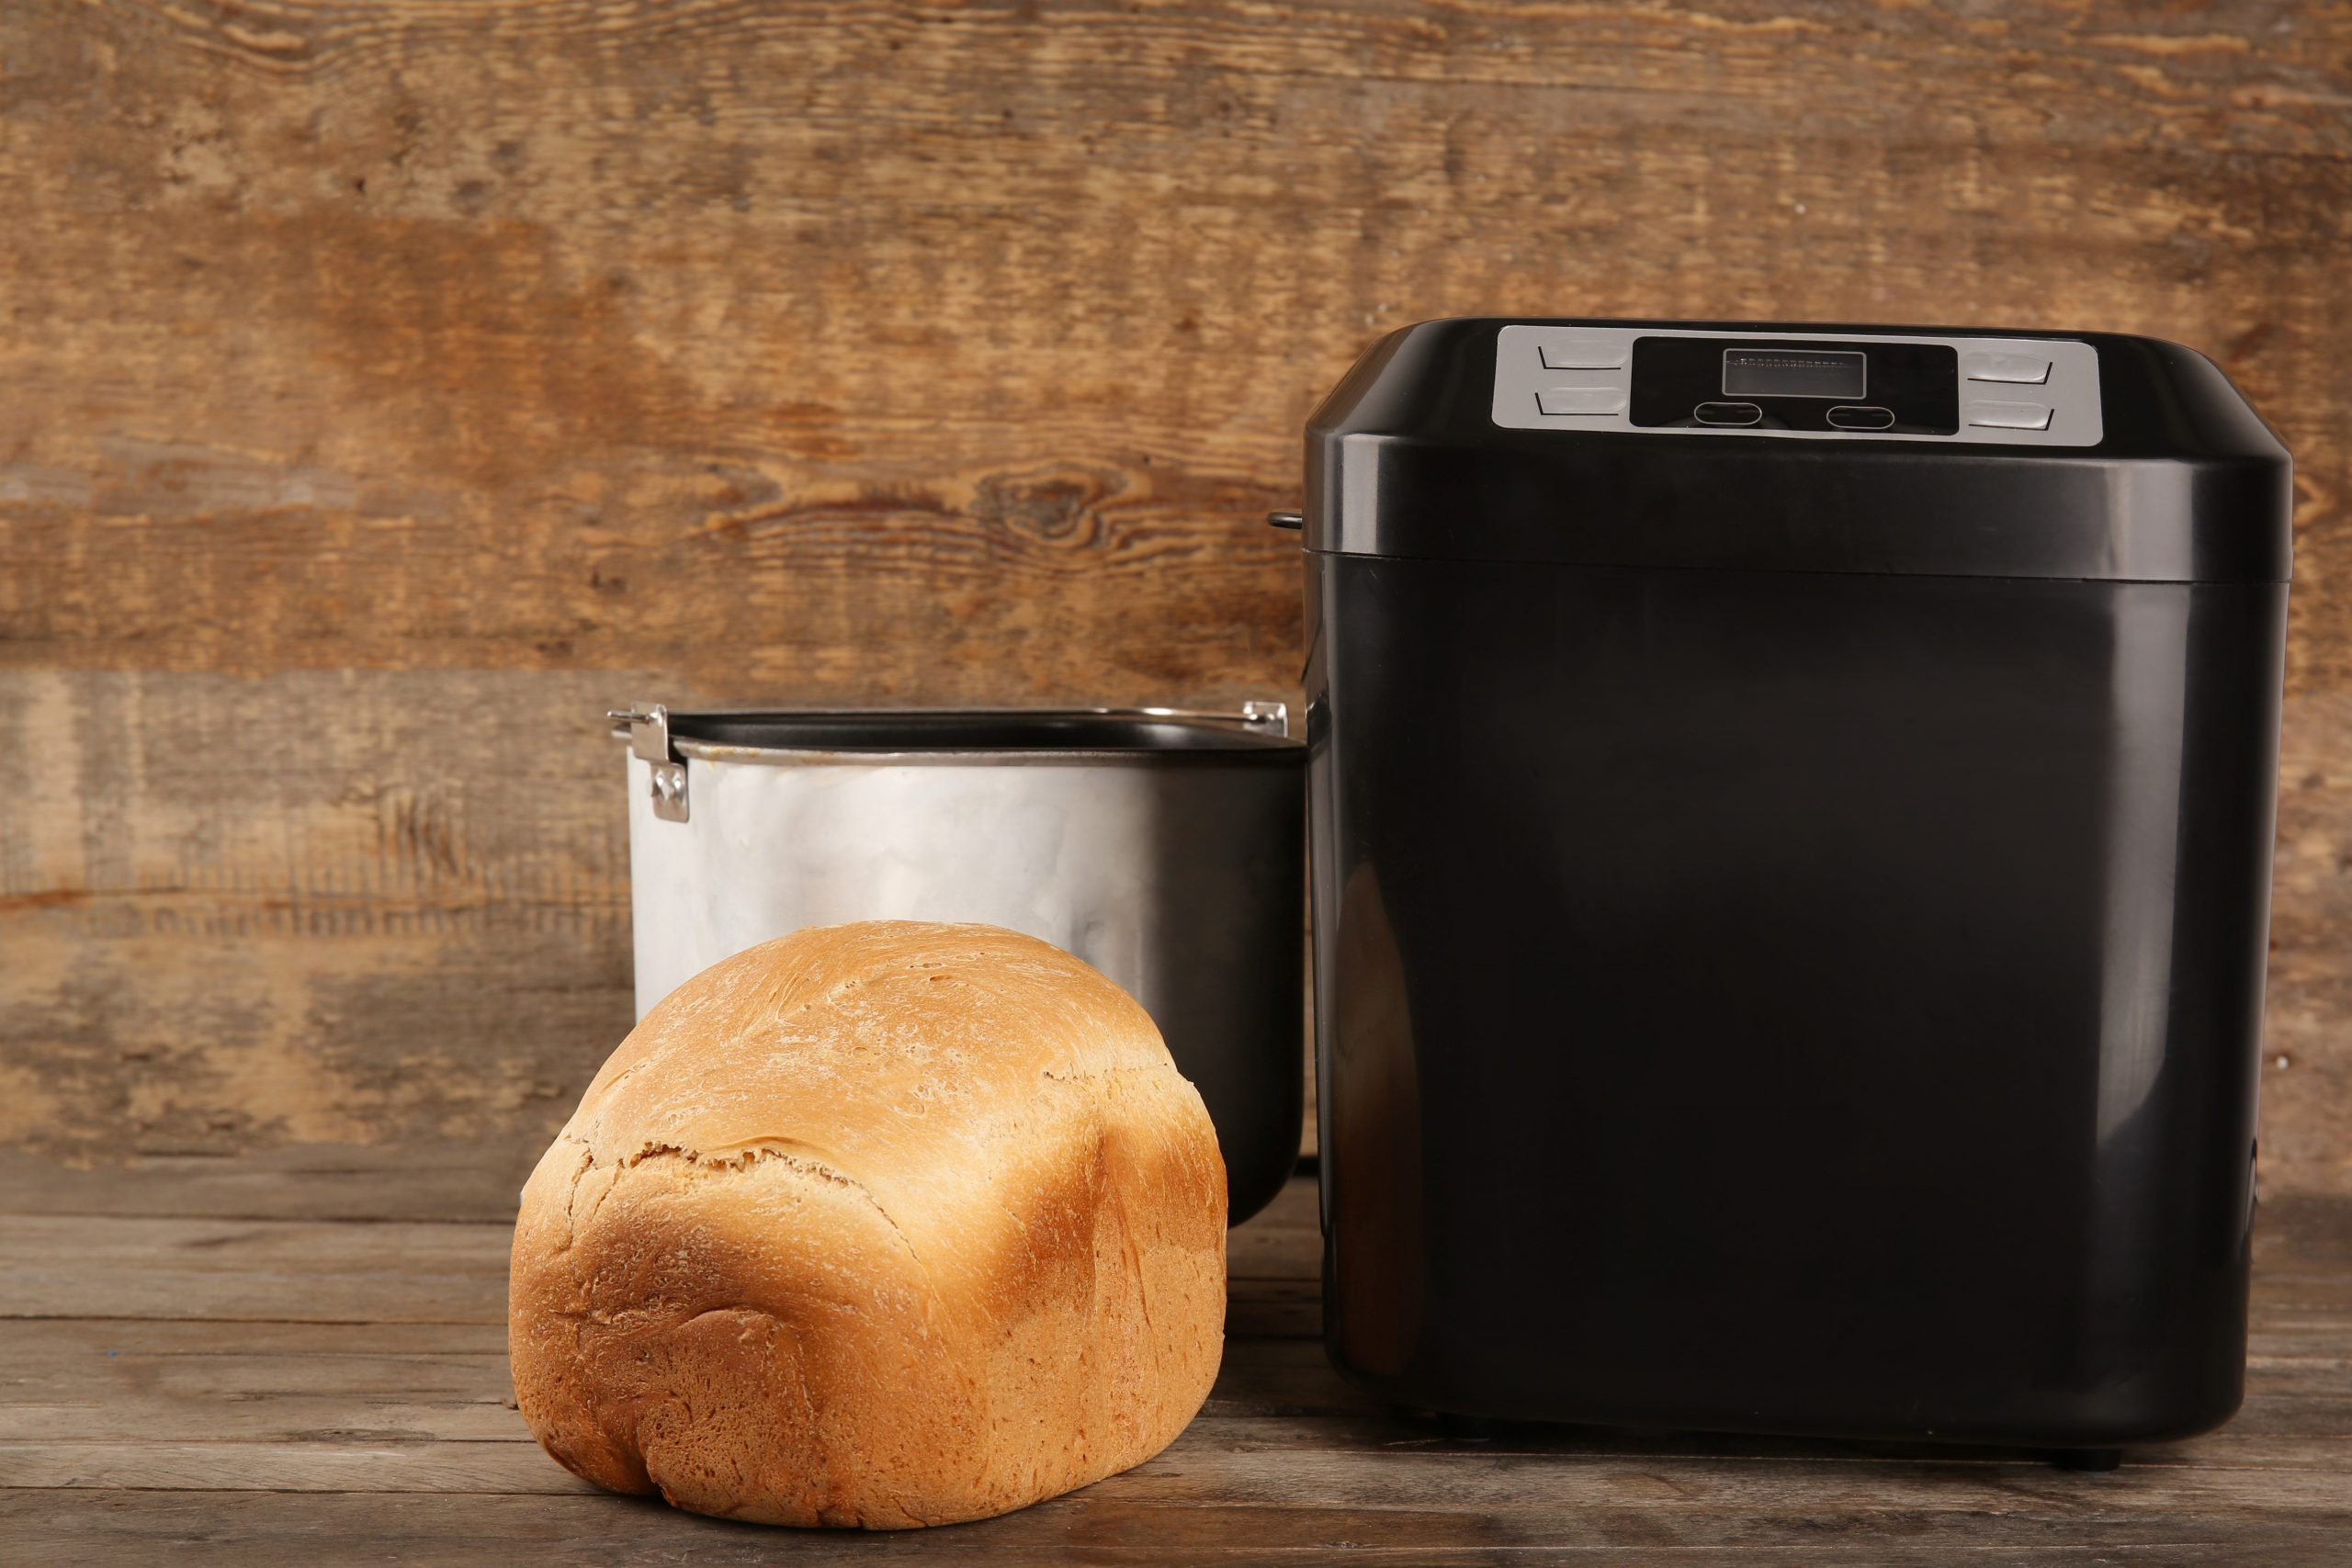 Bread machine with loaf on wooden table